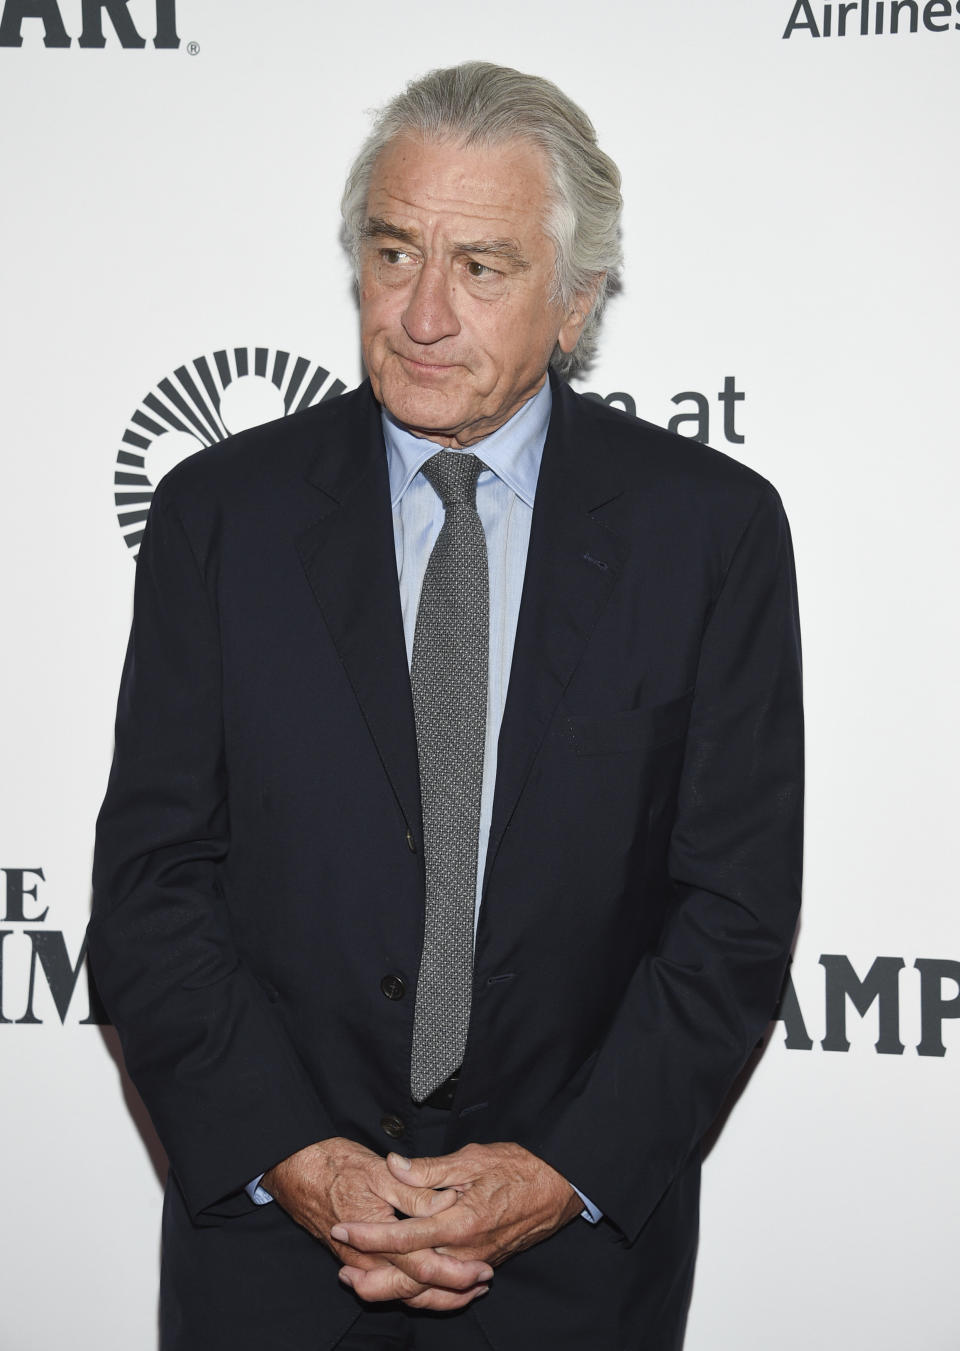 """Robert De Niro attends the world premiere of """"The Irishman"""" at Alice Tully Hall during the opening night of the 57th New York Film Festival on Friday, Sept. 27, 2019, in New York. (Photo by Evan Agostini/Invision/AP)"""